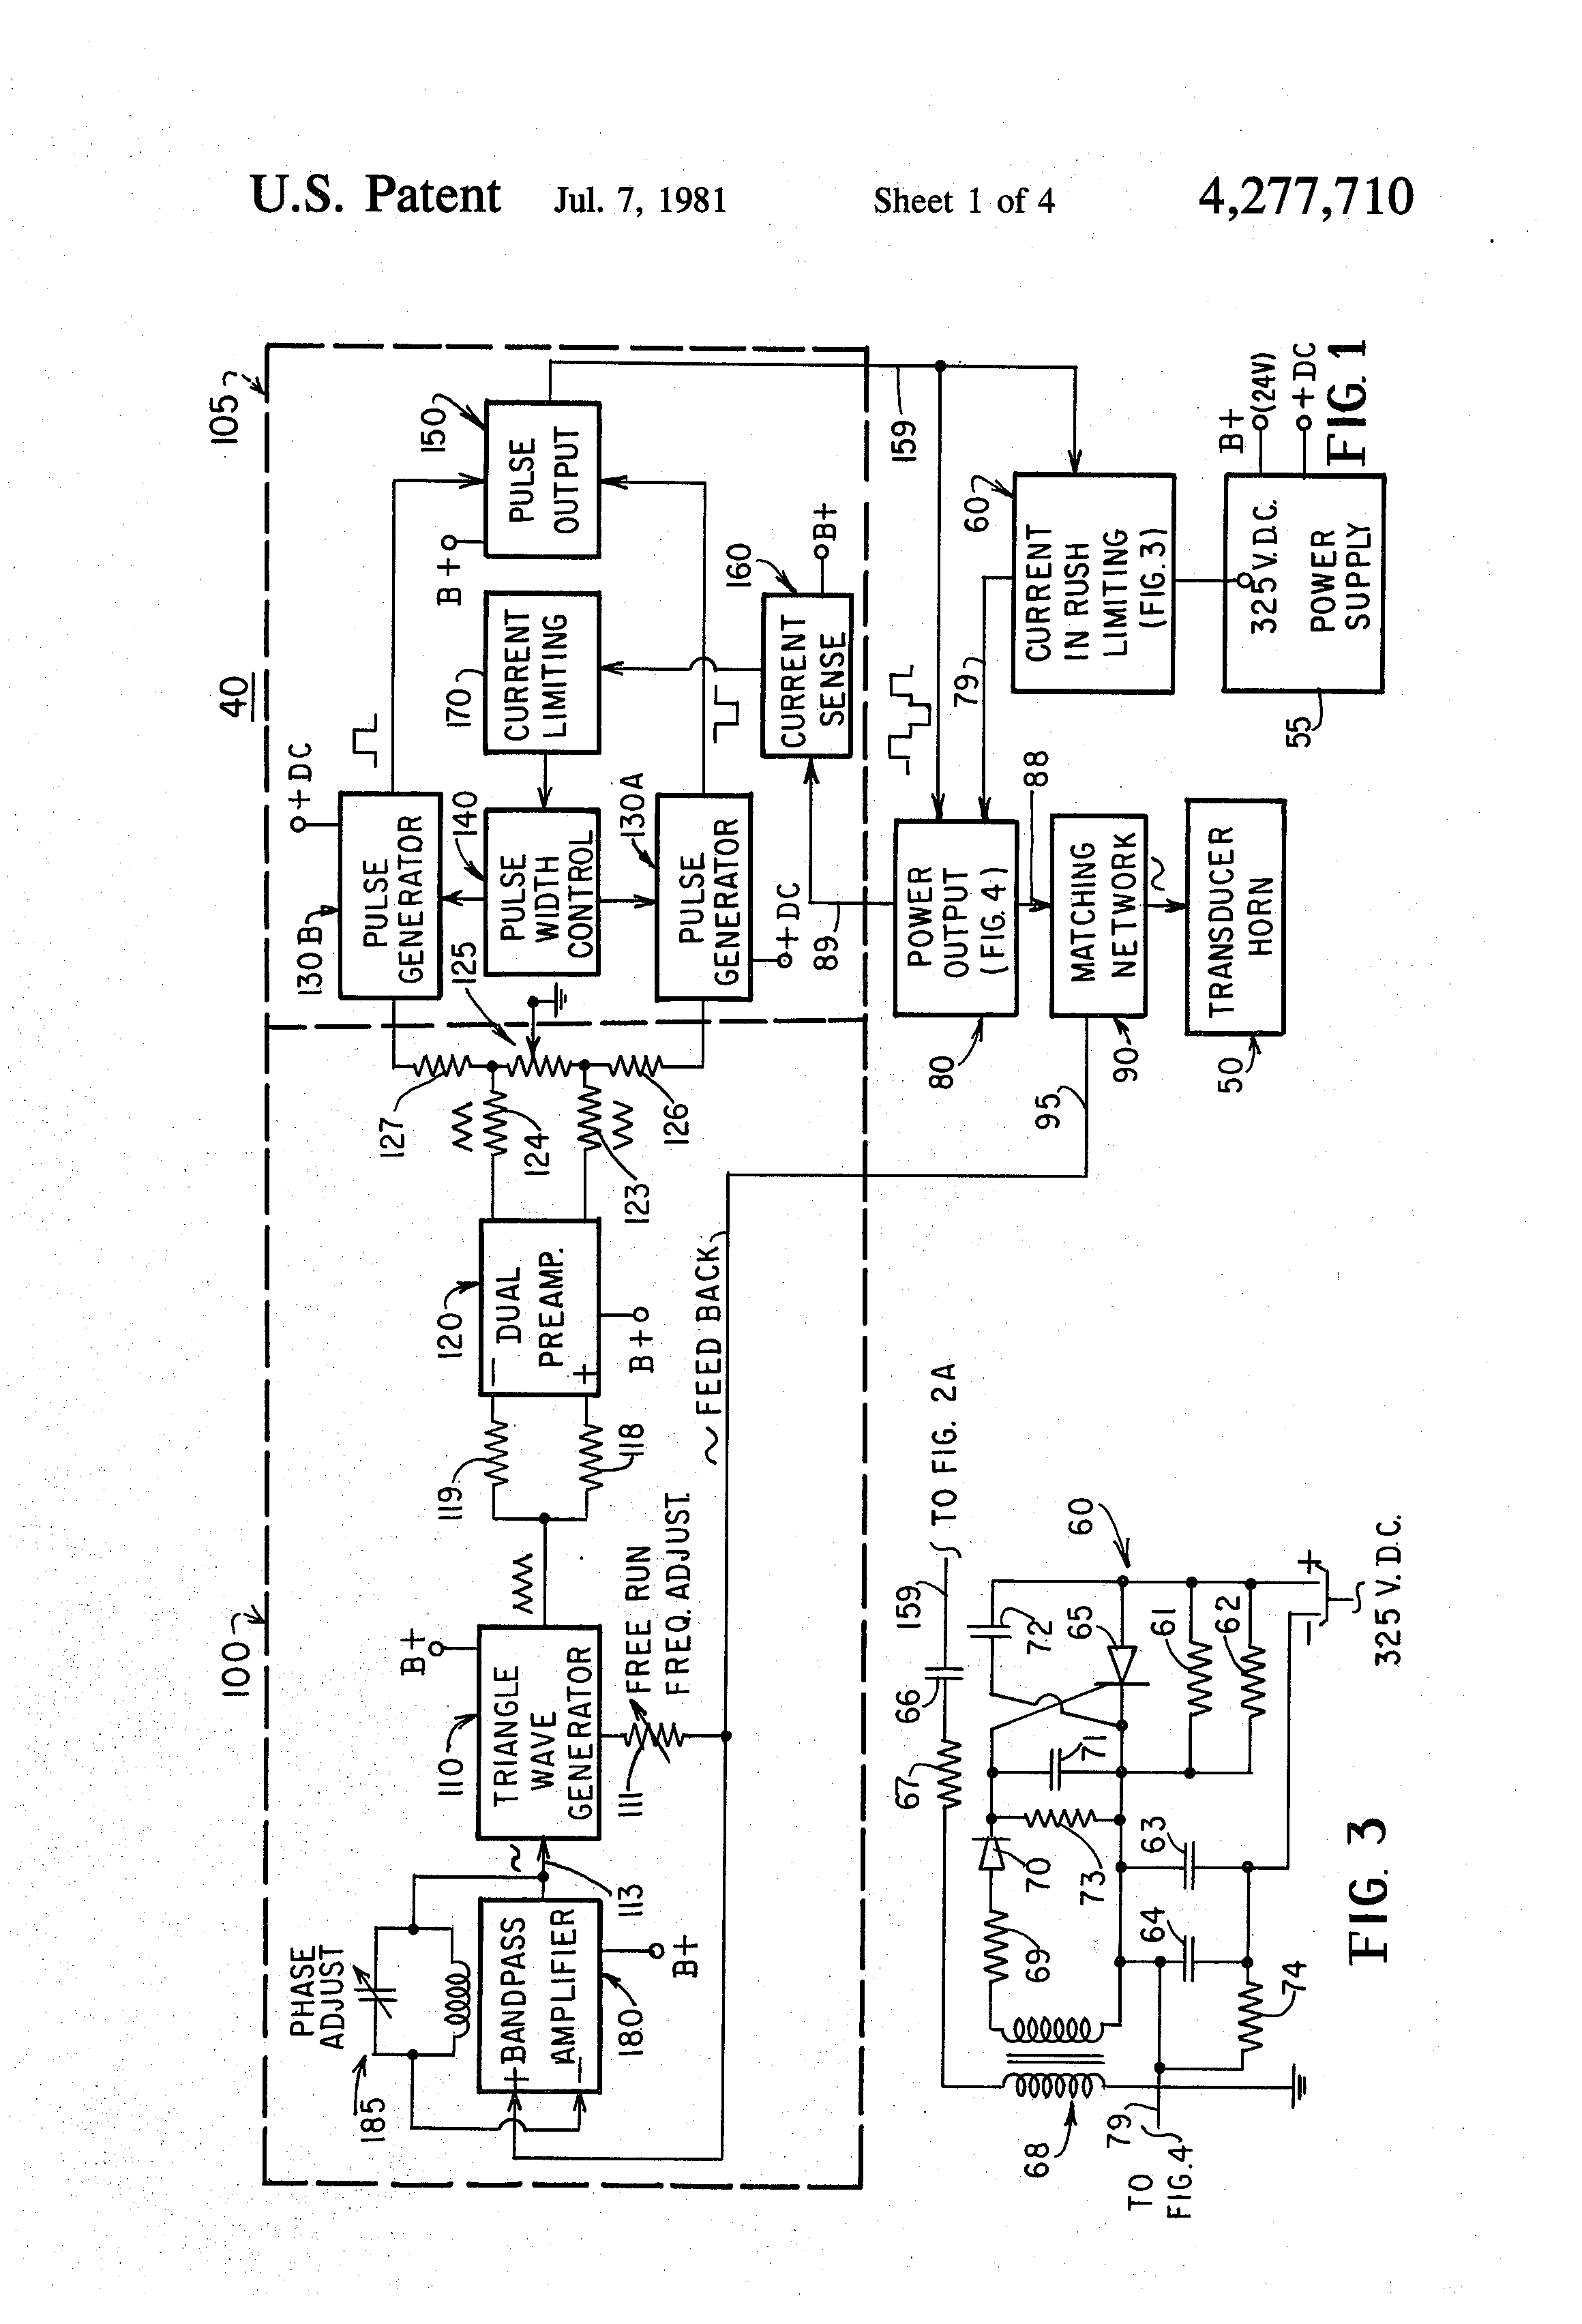 2001 International 4700 Fuse Diagram - Wiring Schematics on